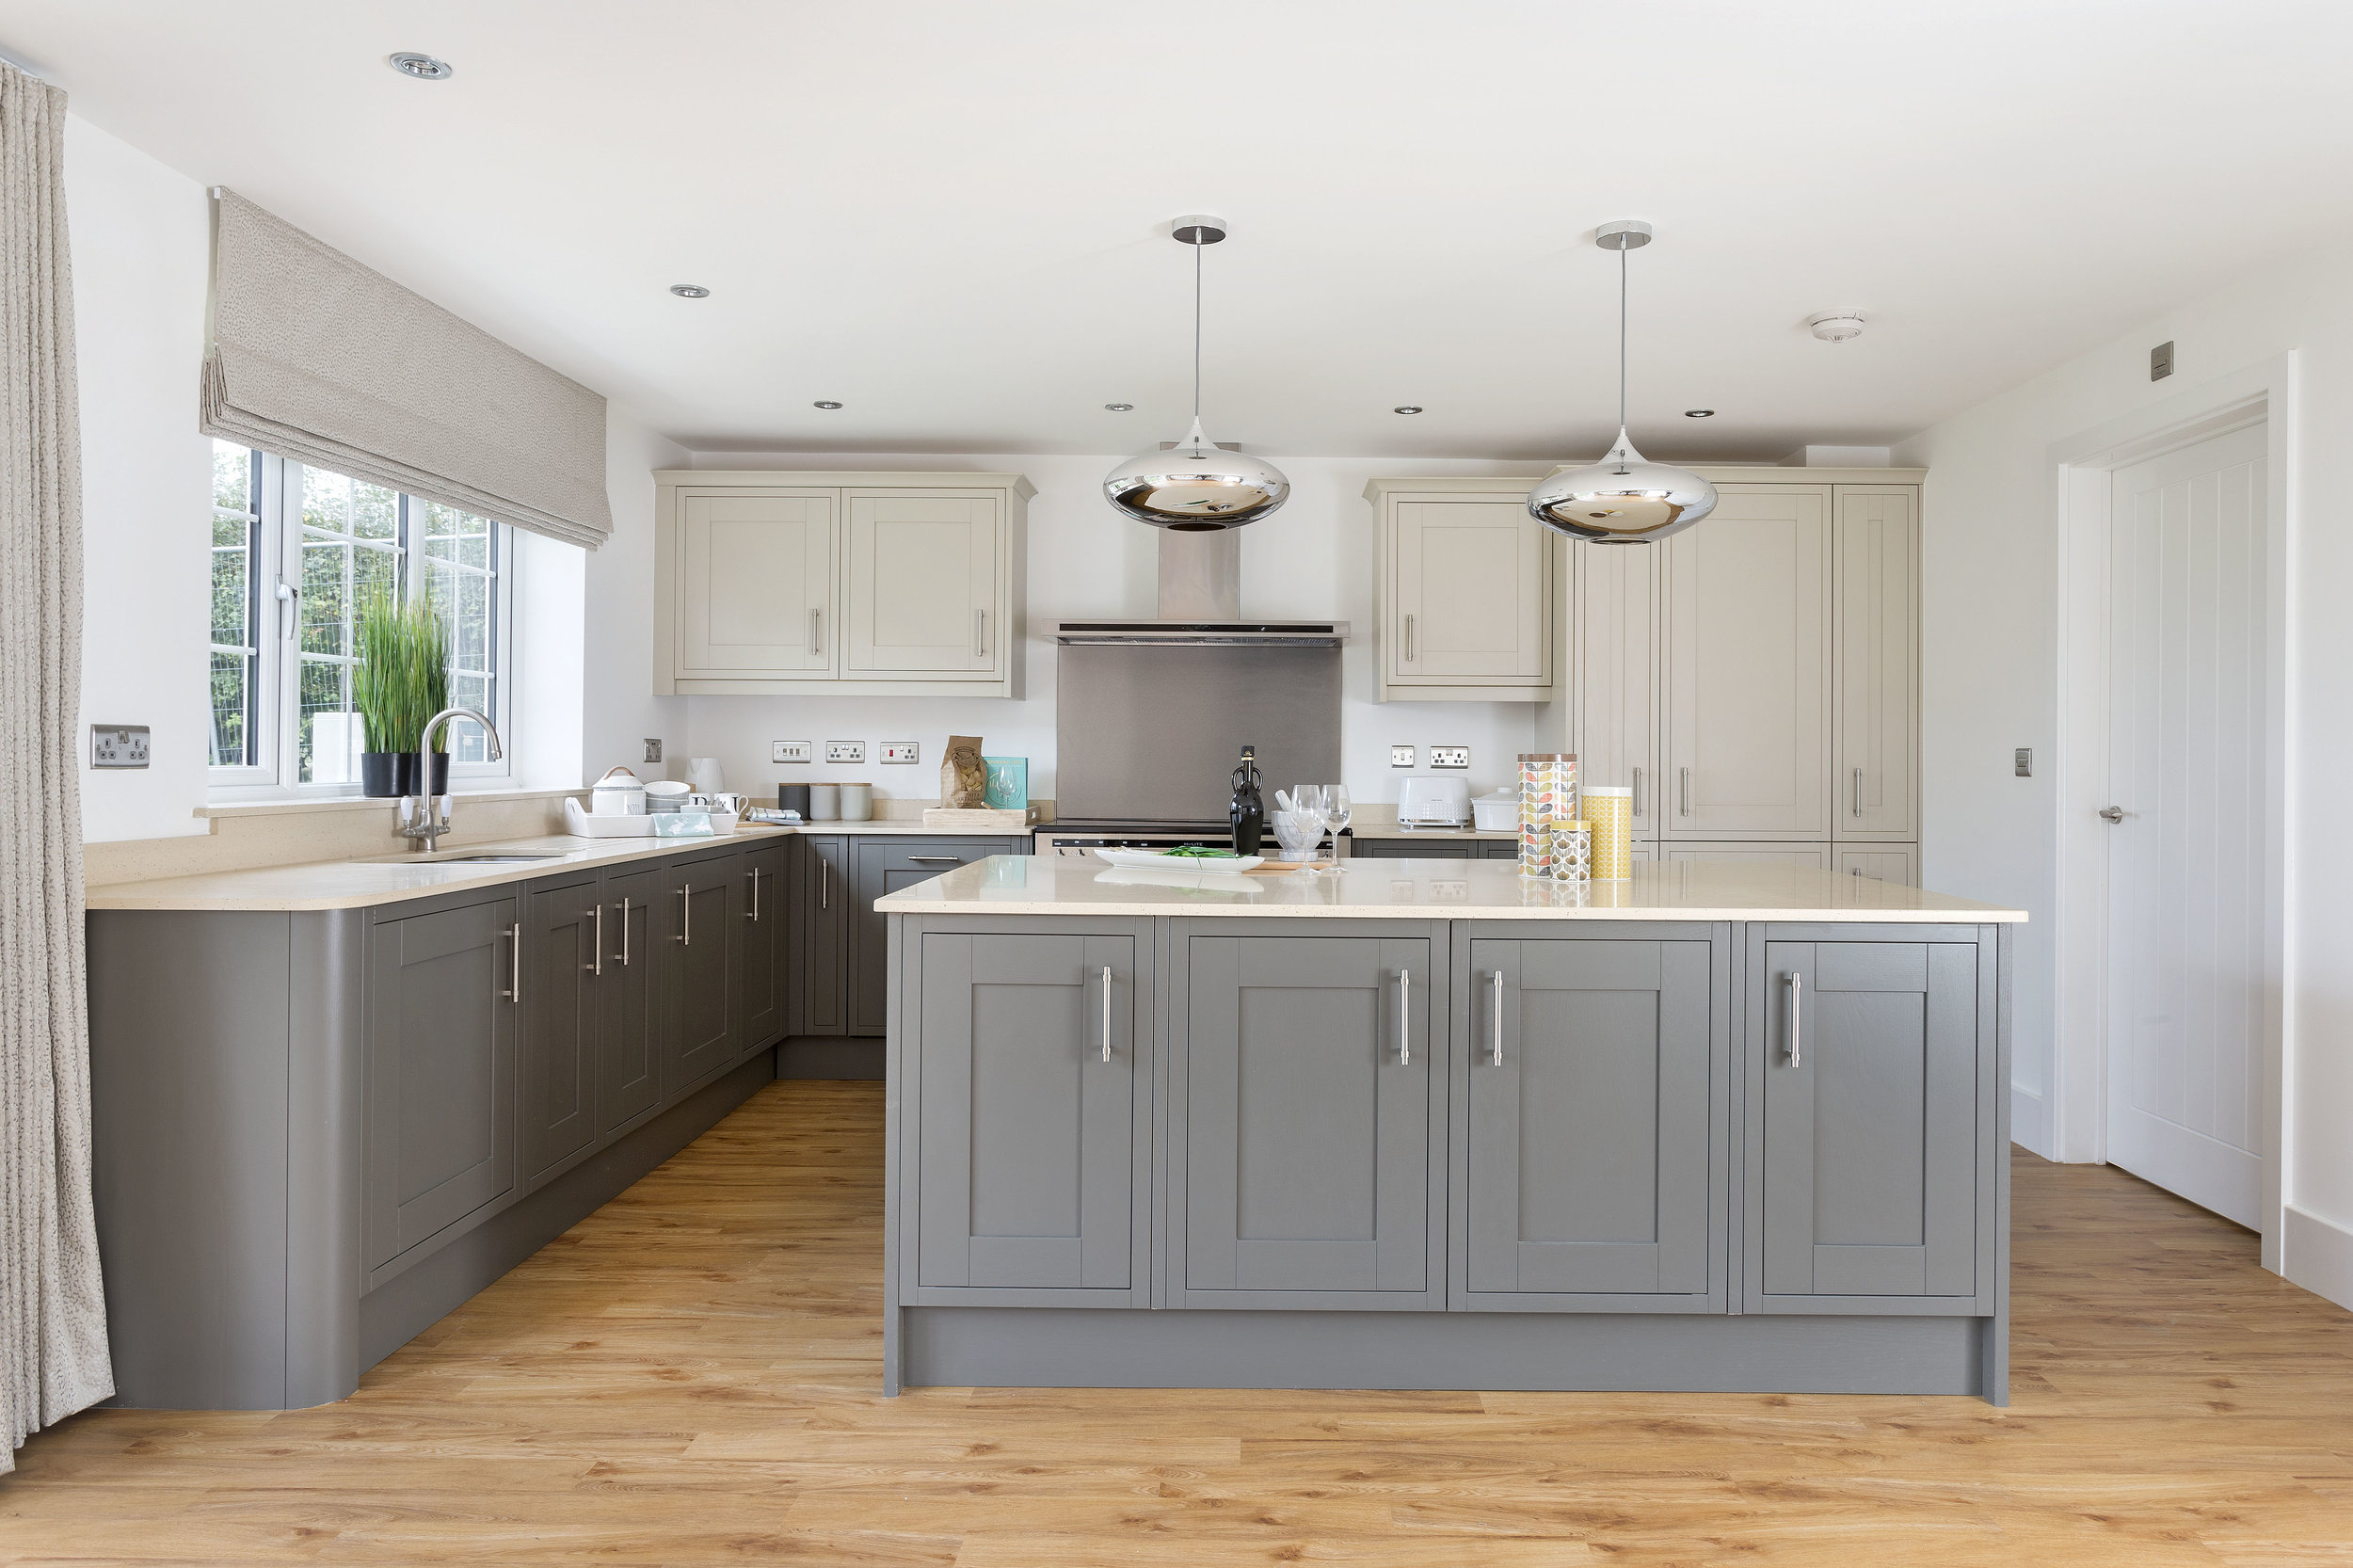 all fittings and fixtures are high quality, in keeping with the theme of the development